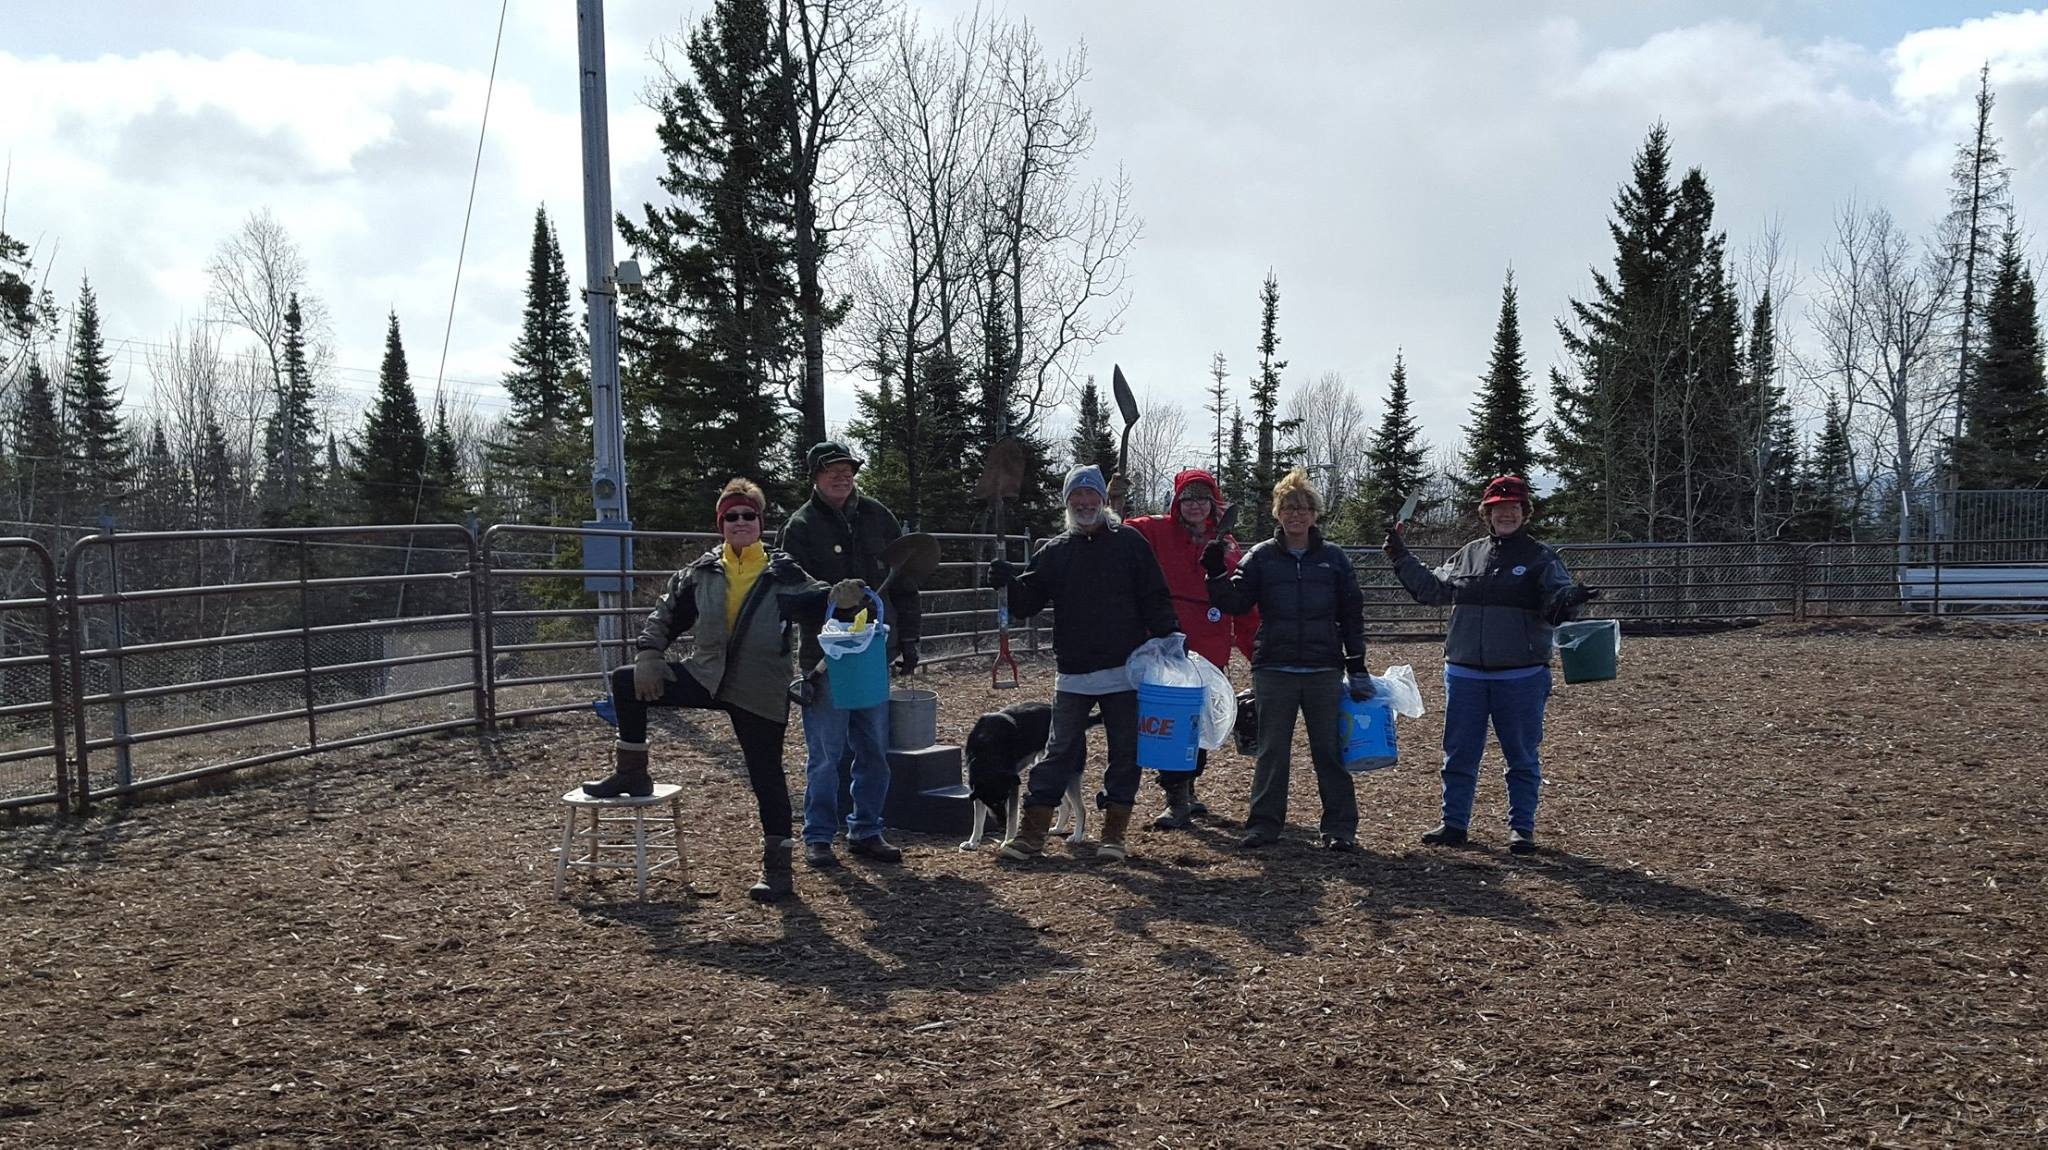 Volunteers perform spring clean-up after a busy winter at the park.